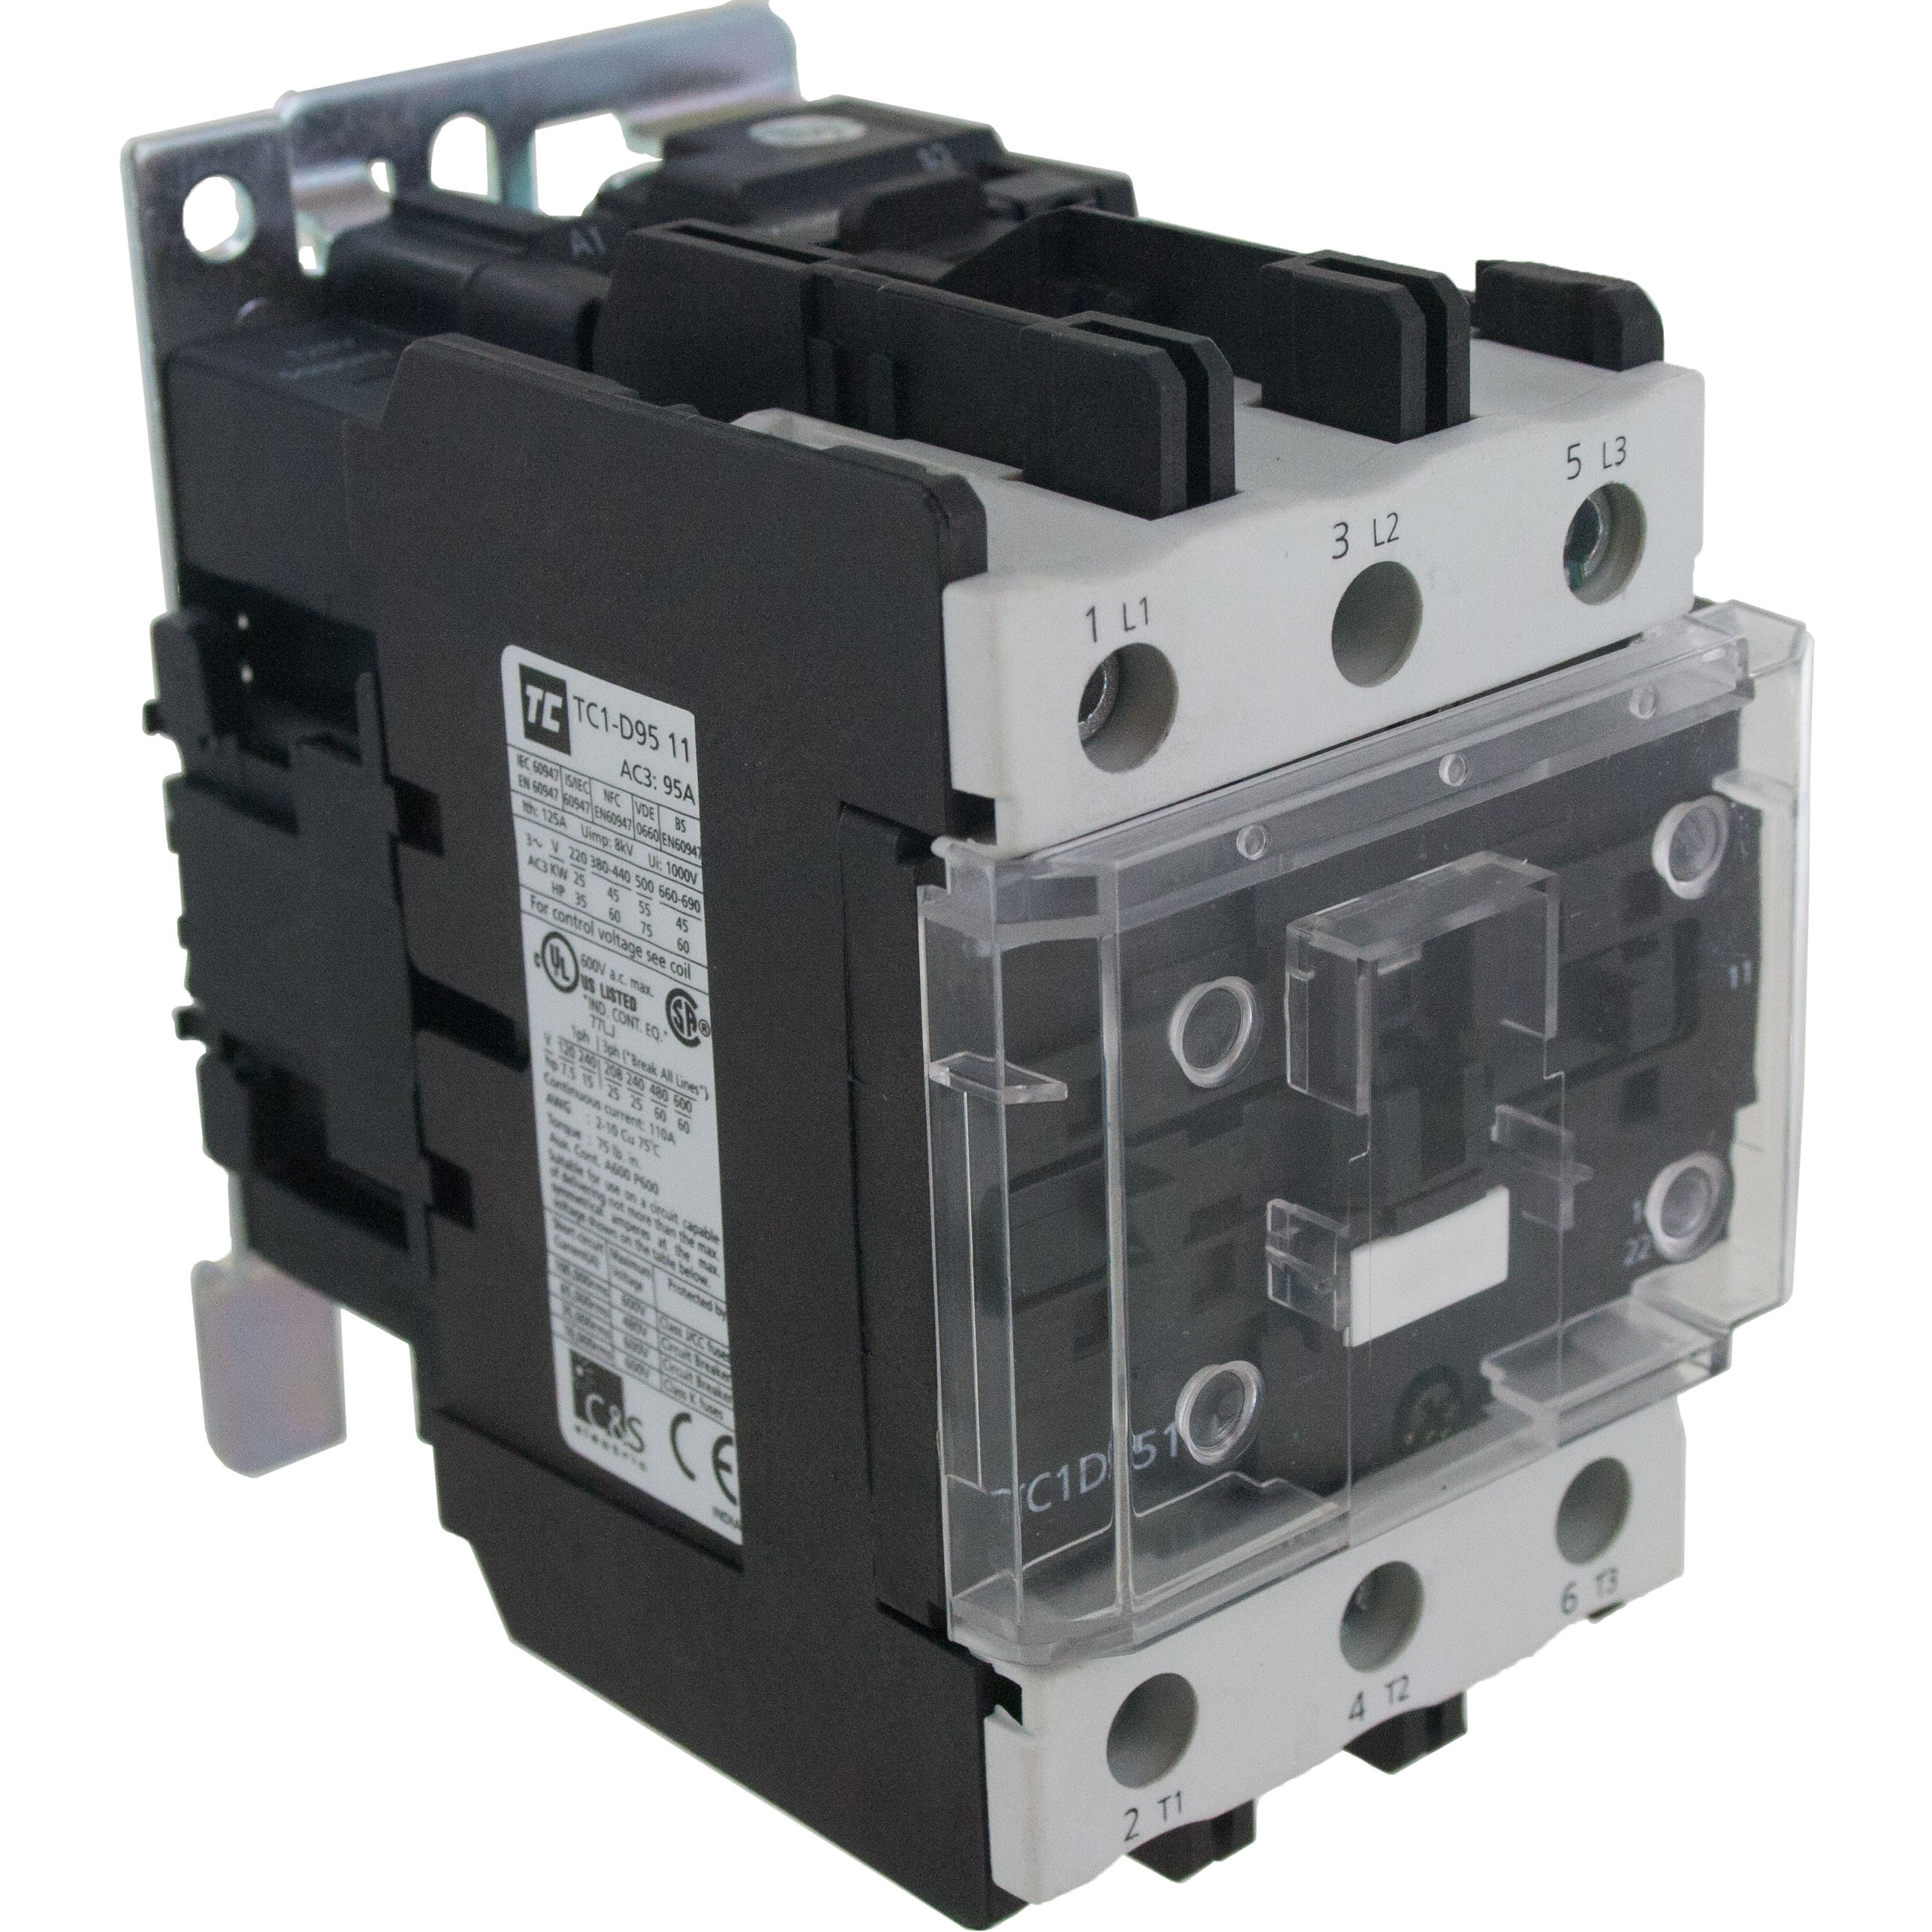 3 Pole Contactor 95 Amp 1 N/O - 1 N/C 208 Volt AC Coil Angle